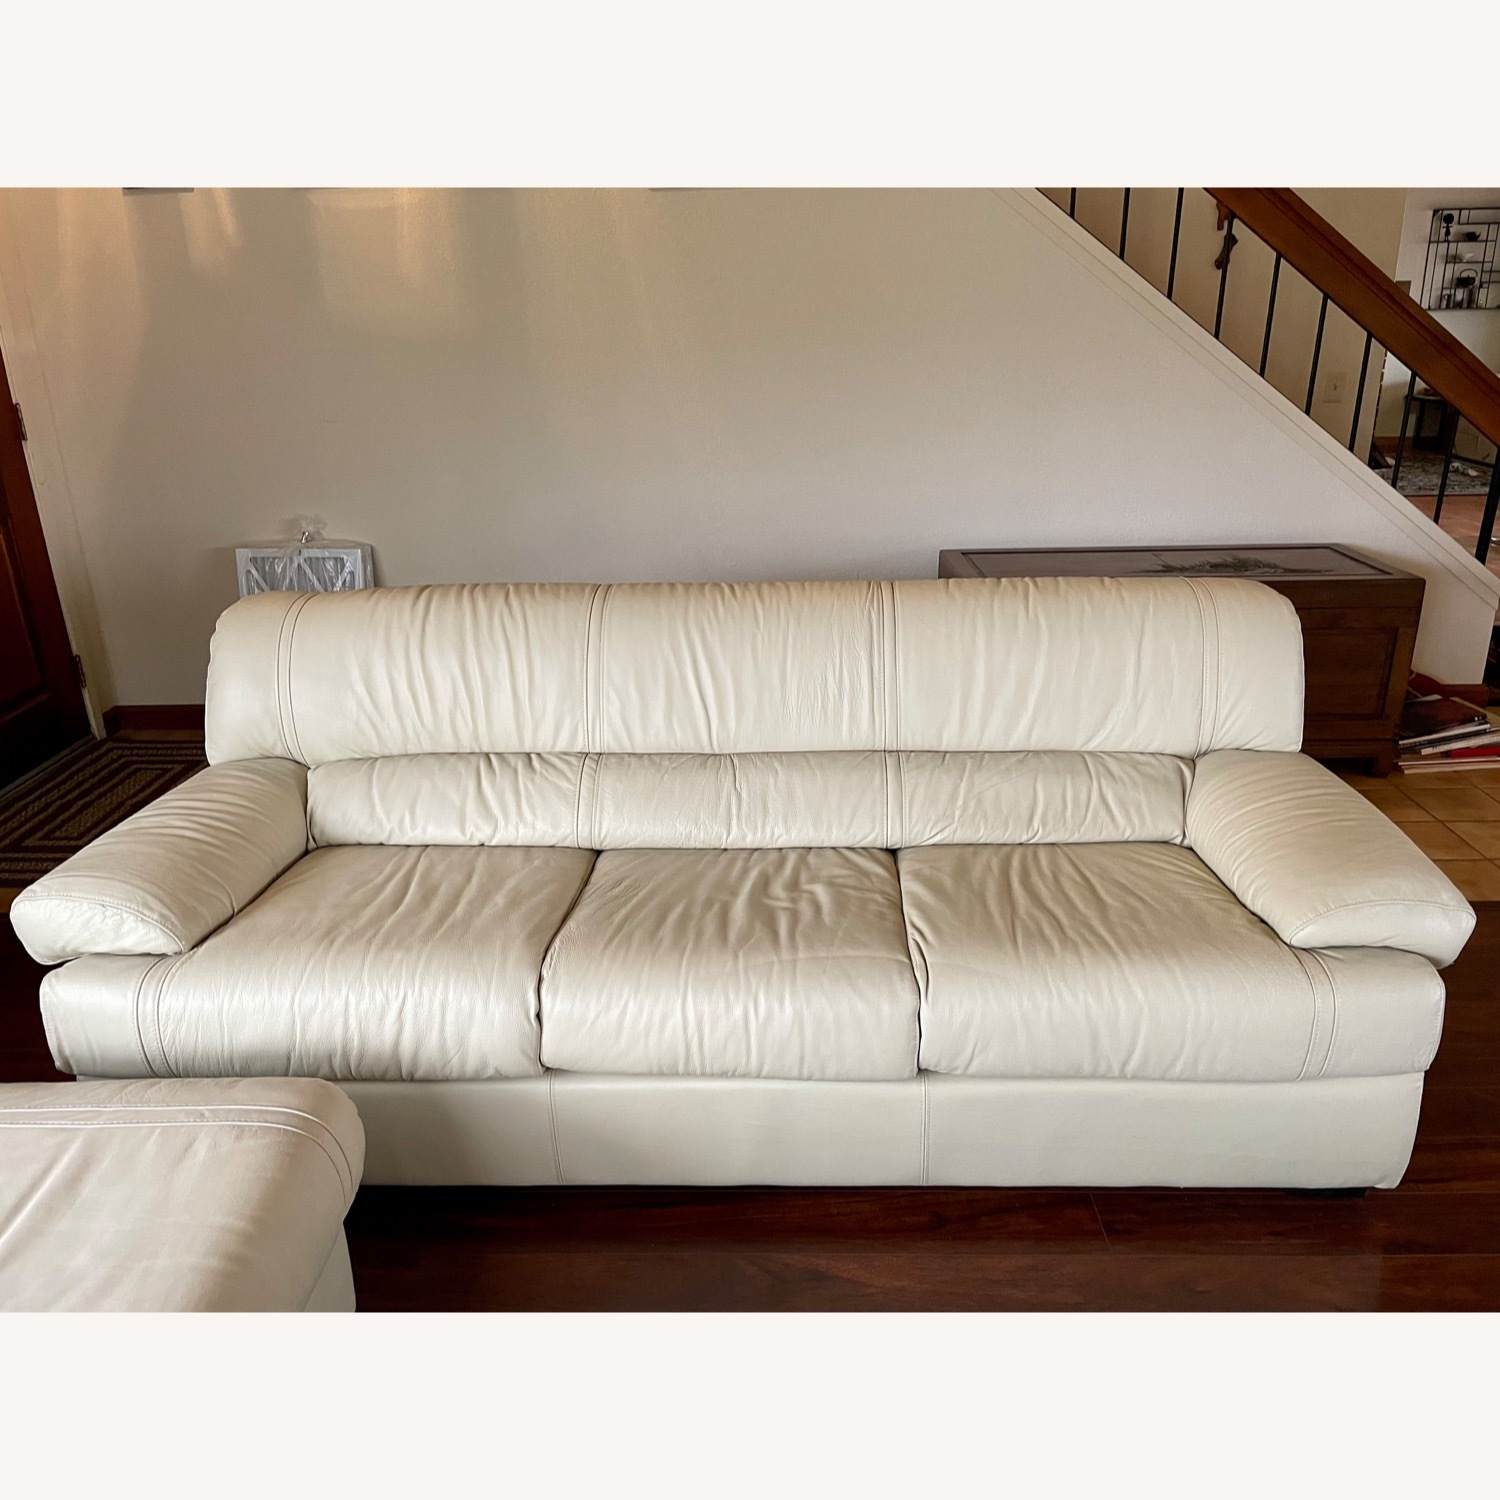 Leather Sofa Set Made in Italy - image-5